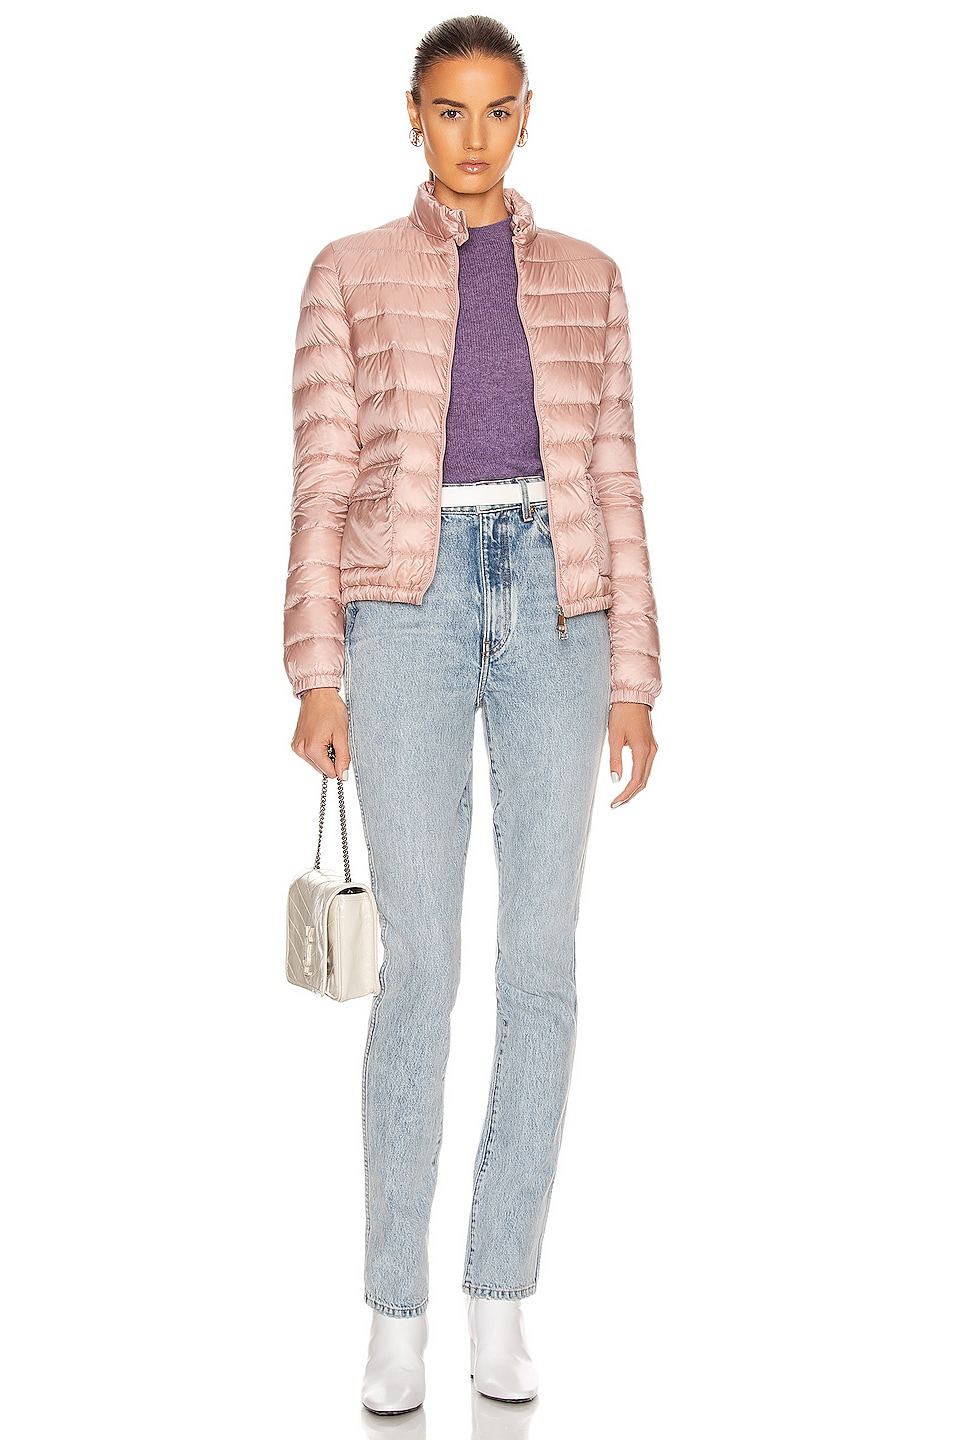 Image 6 of Moncler Lans Giubbotto Jacket in Blush